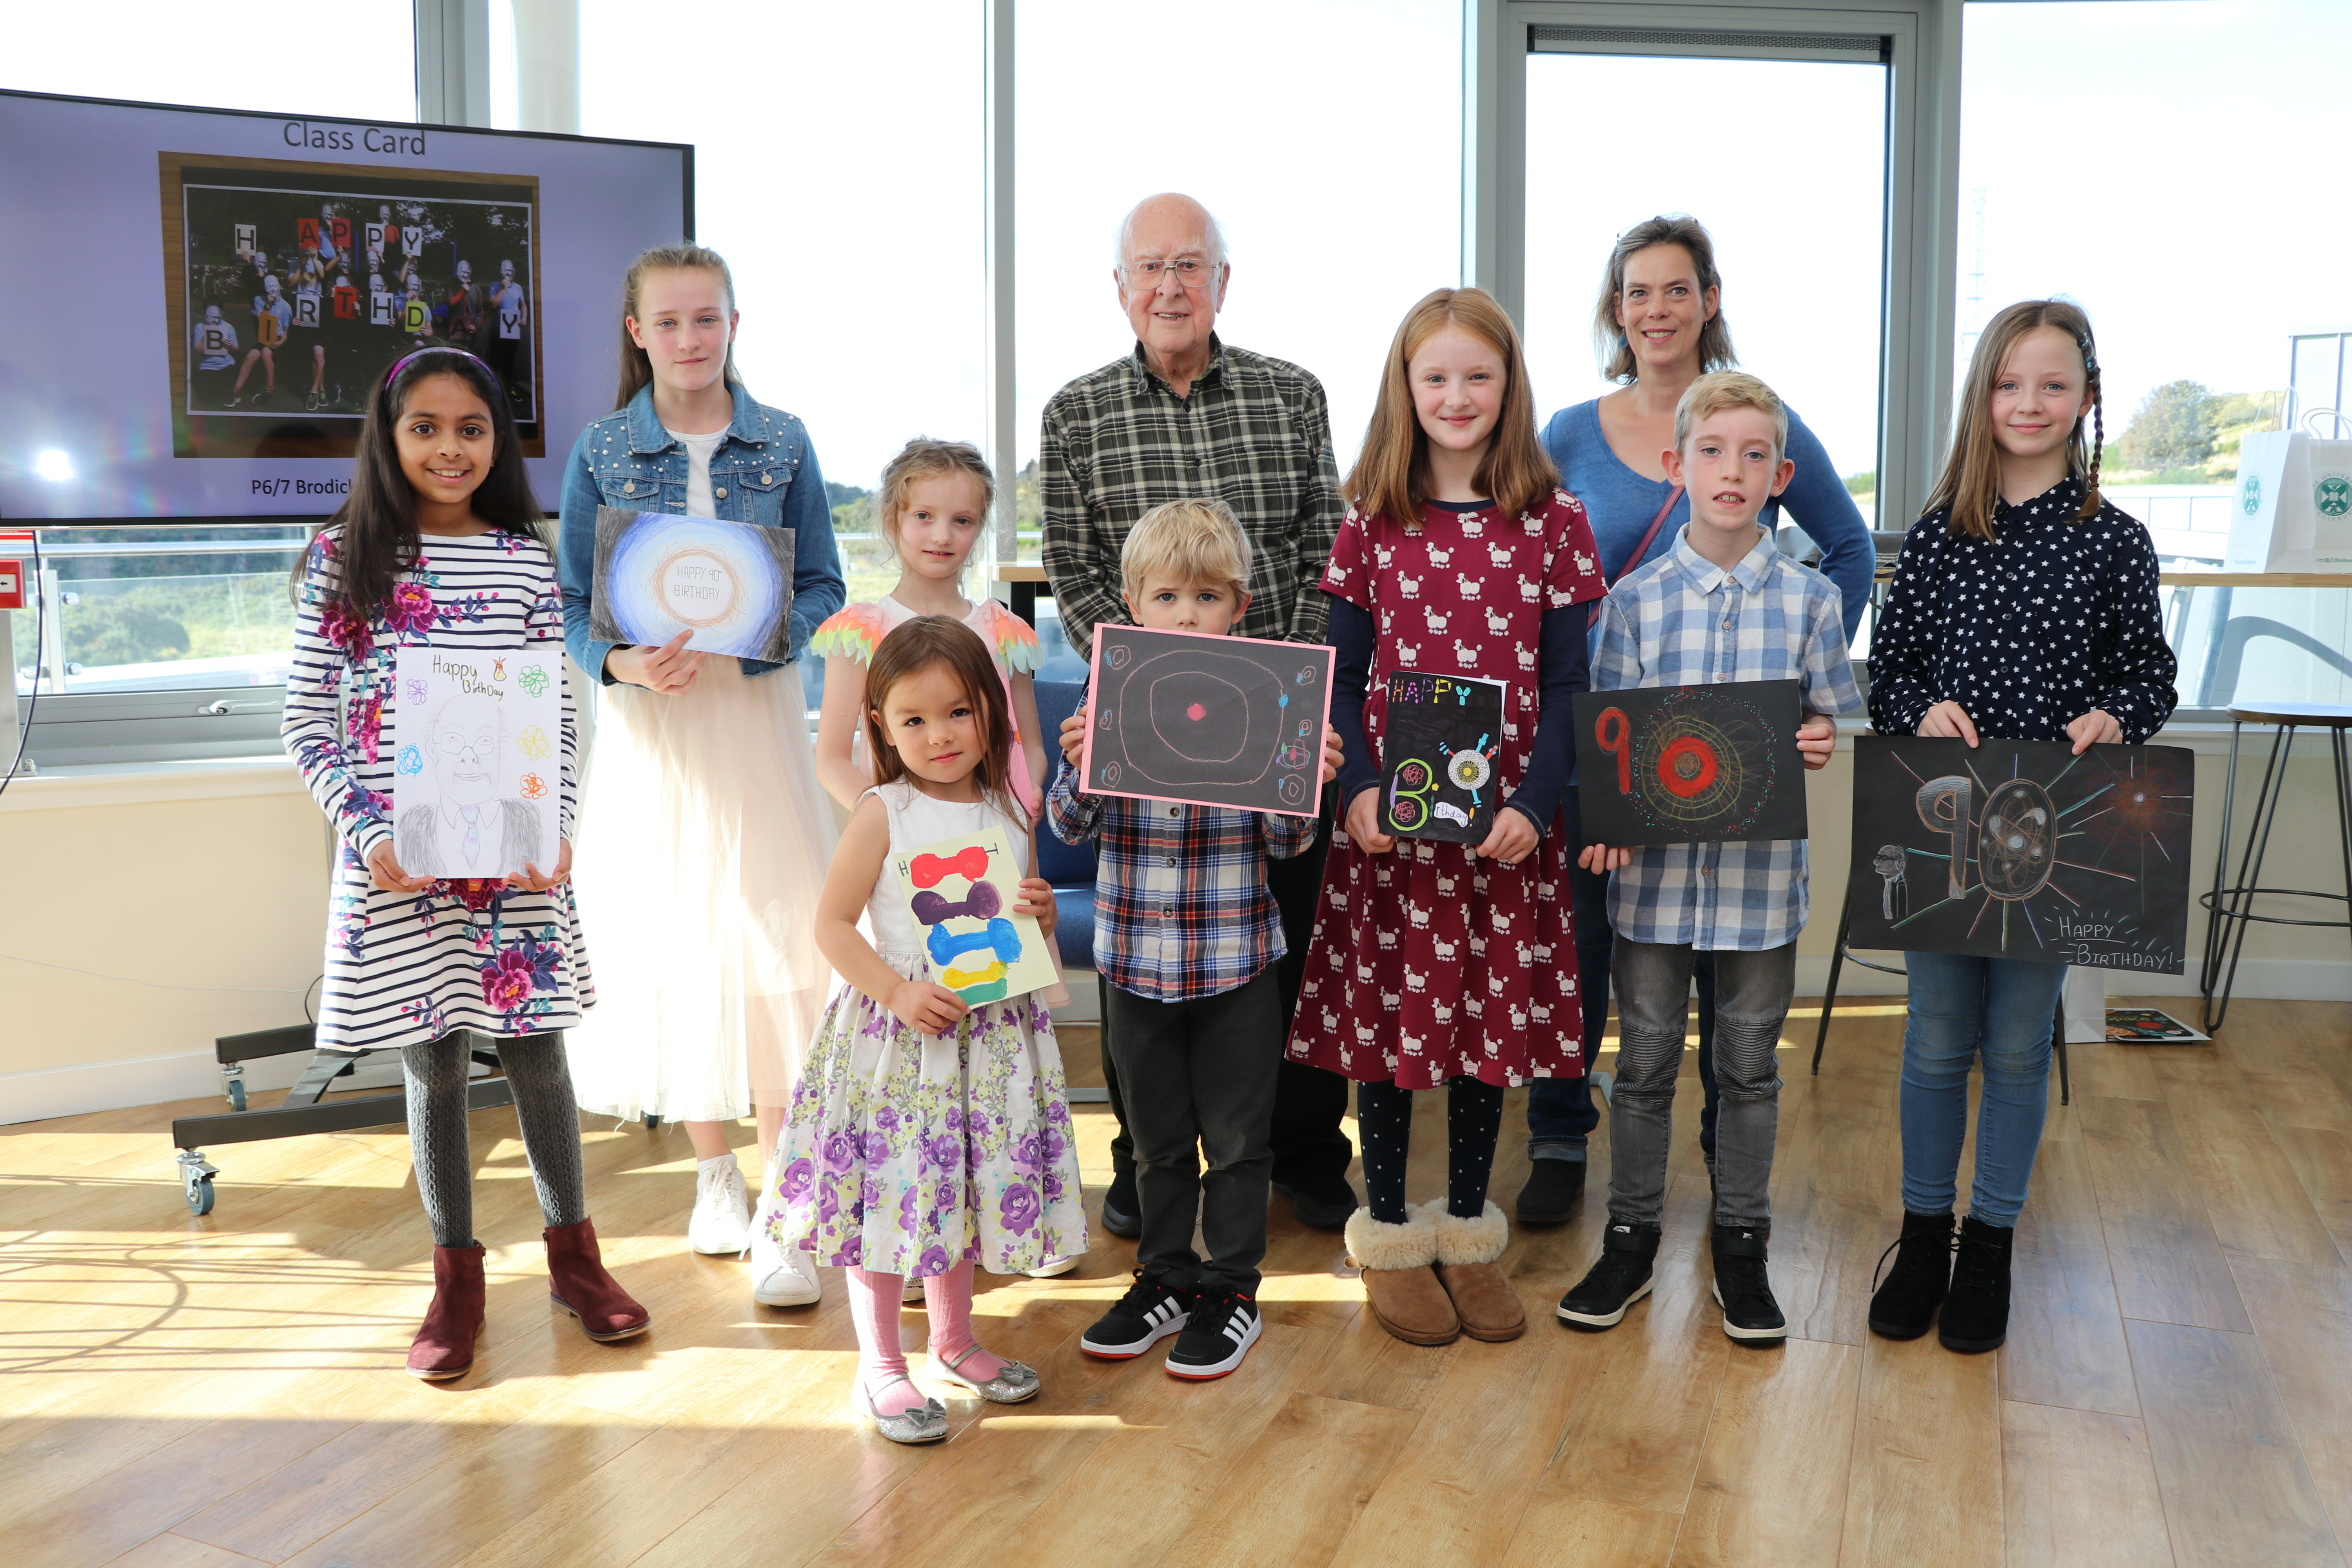 Photograph of Peter Higgs with schoolchildren at a prizegiving event at the Royal Observatory, Edinburgh on 28 Sept 2019